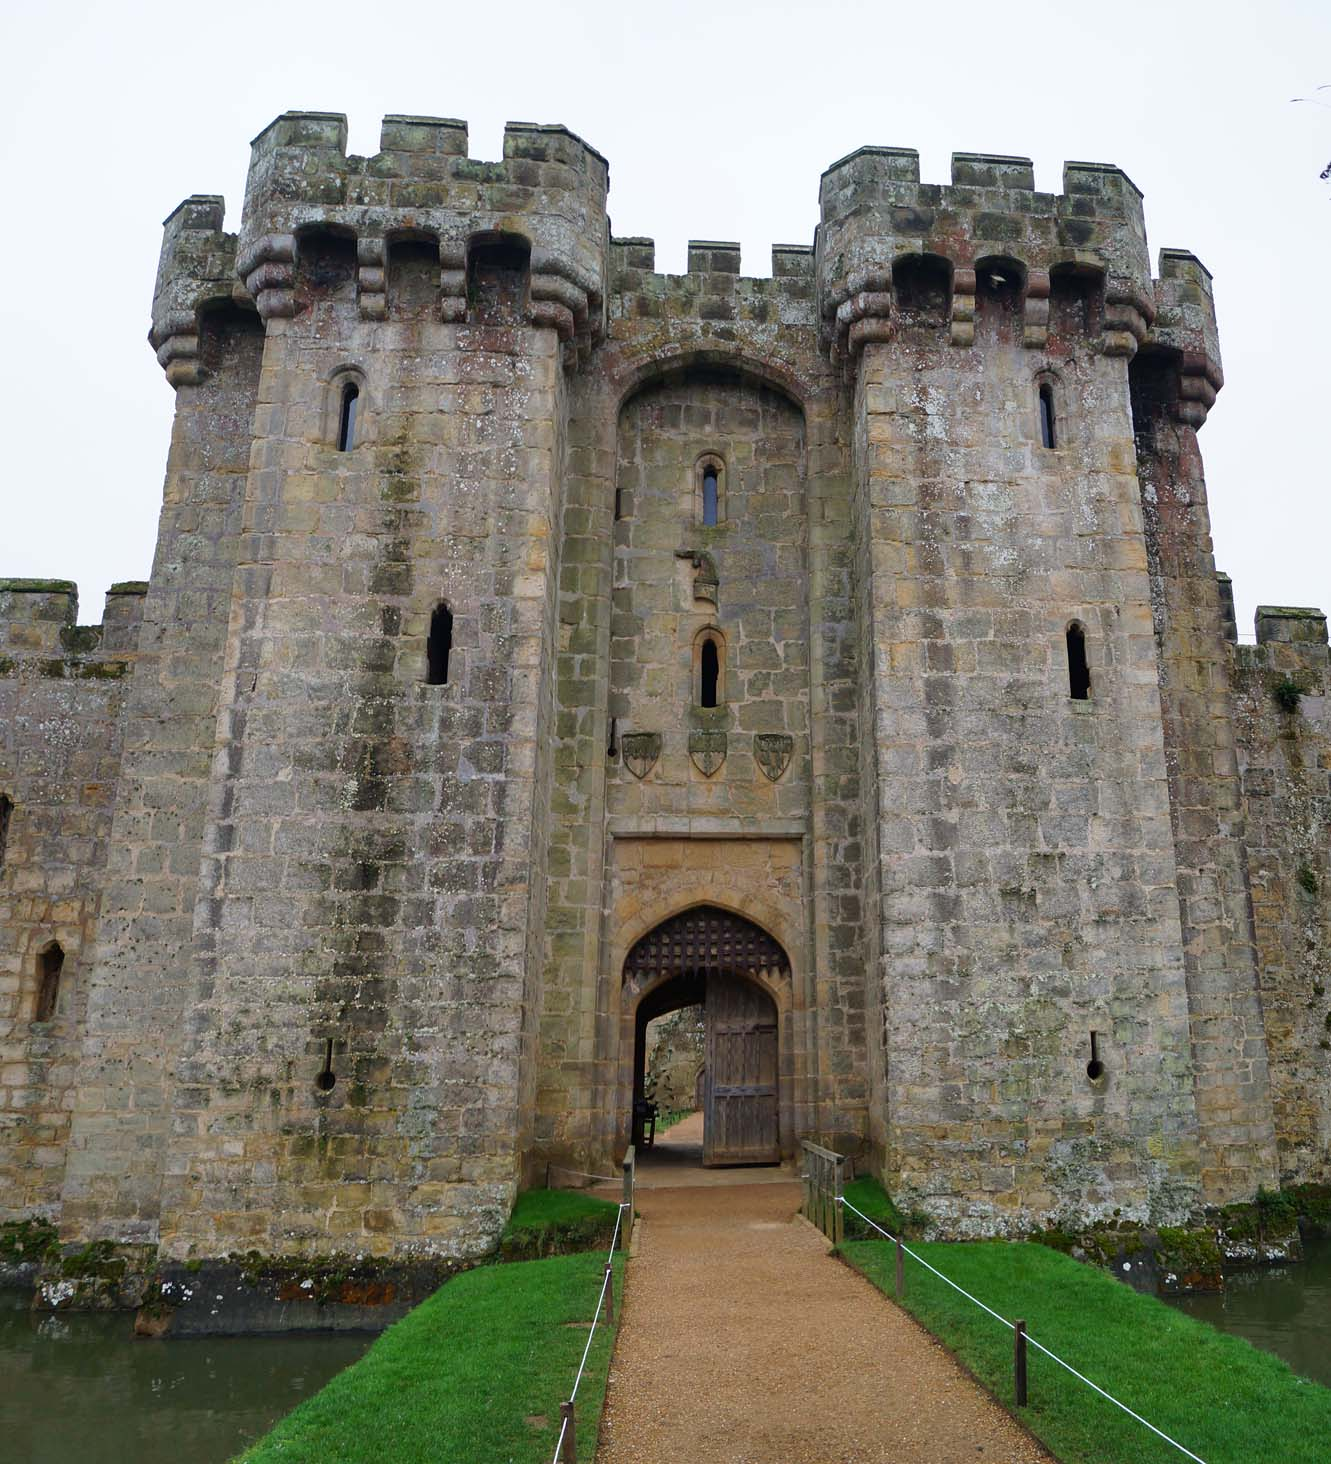 Great A Second Bridge Provided Access To The Postern Gate. The Castle Was  Constructed From Sandstone Ashlar Quarried From Nearby Wadhurst. Design Ideas